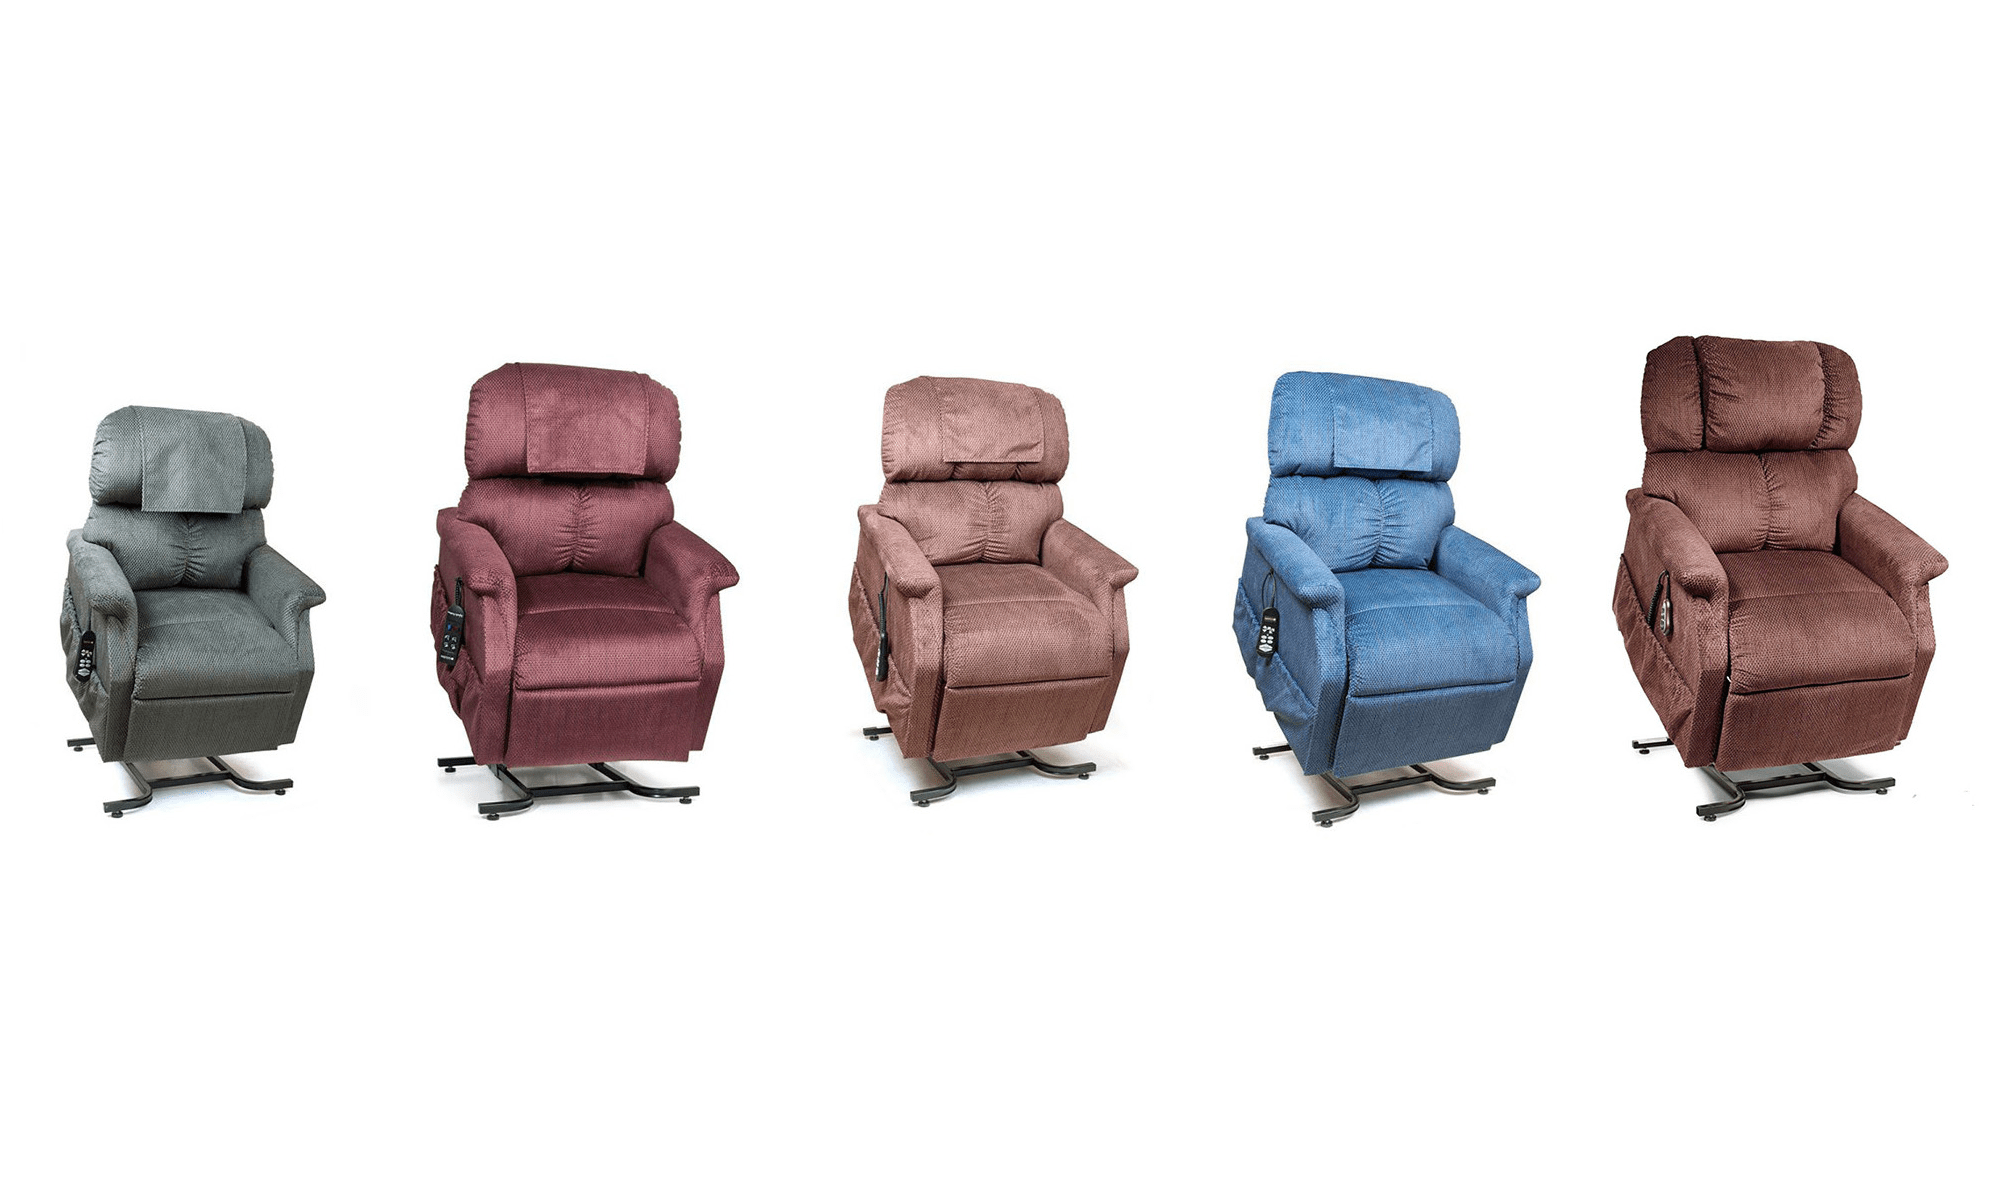 Lift-chair 5 colors